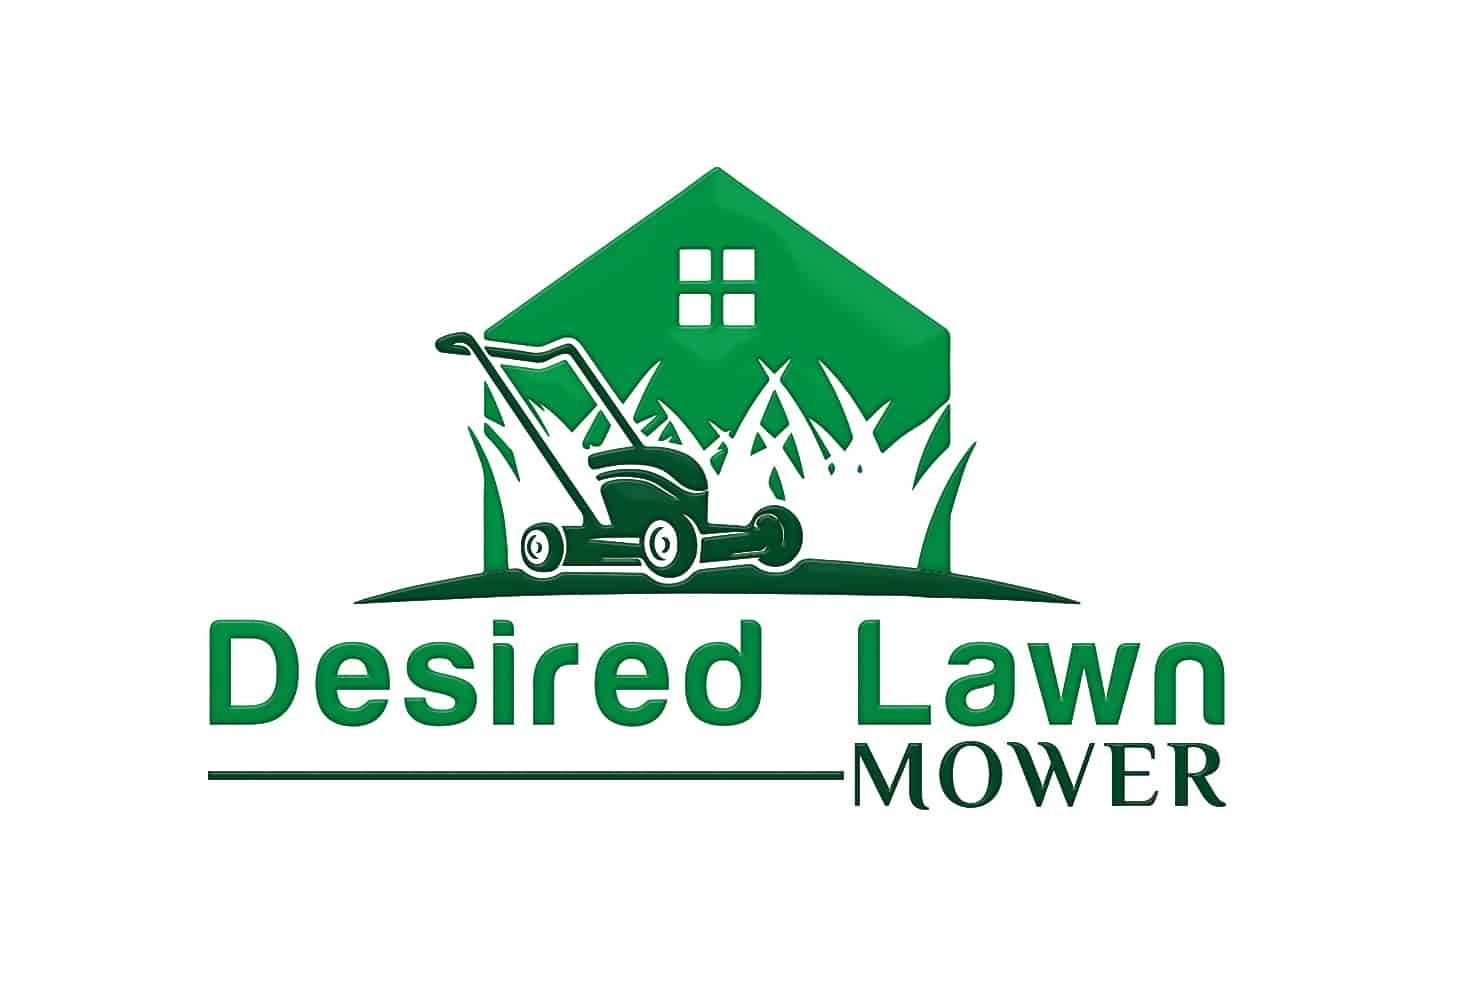 Desired lawn mower